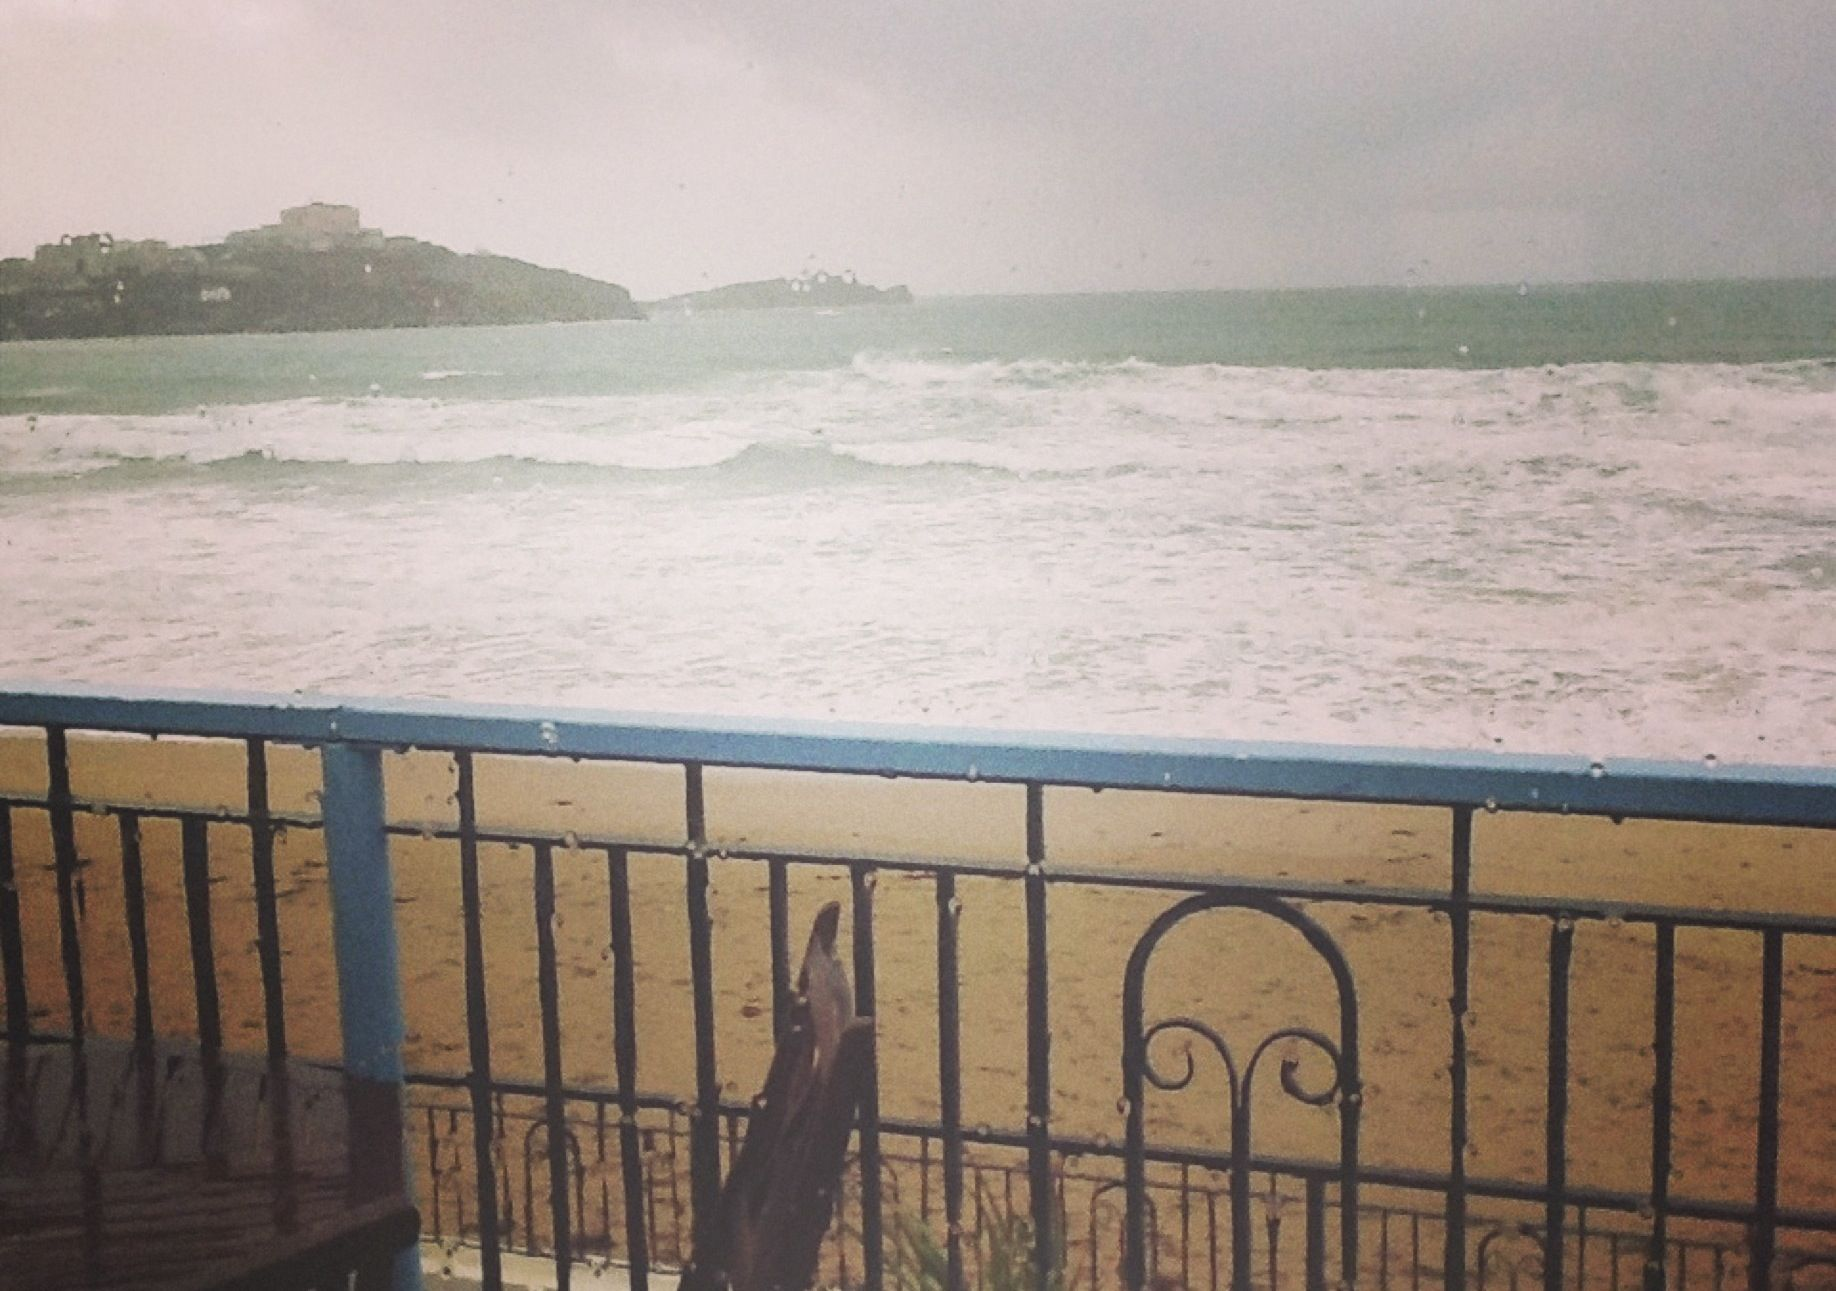 Rainy day in Cornwall // [england, storm, seaside, sea, view, misty, beautiful, sand, winter]